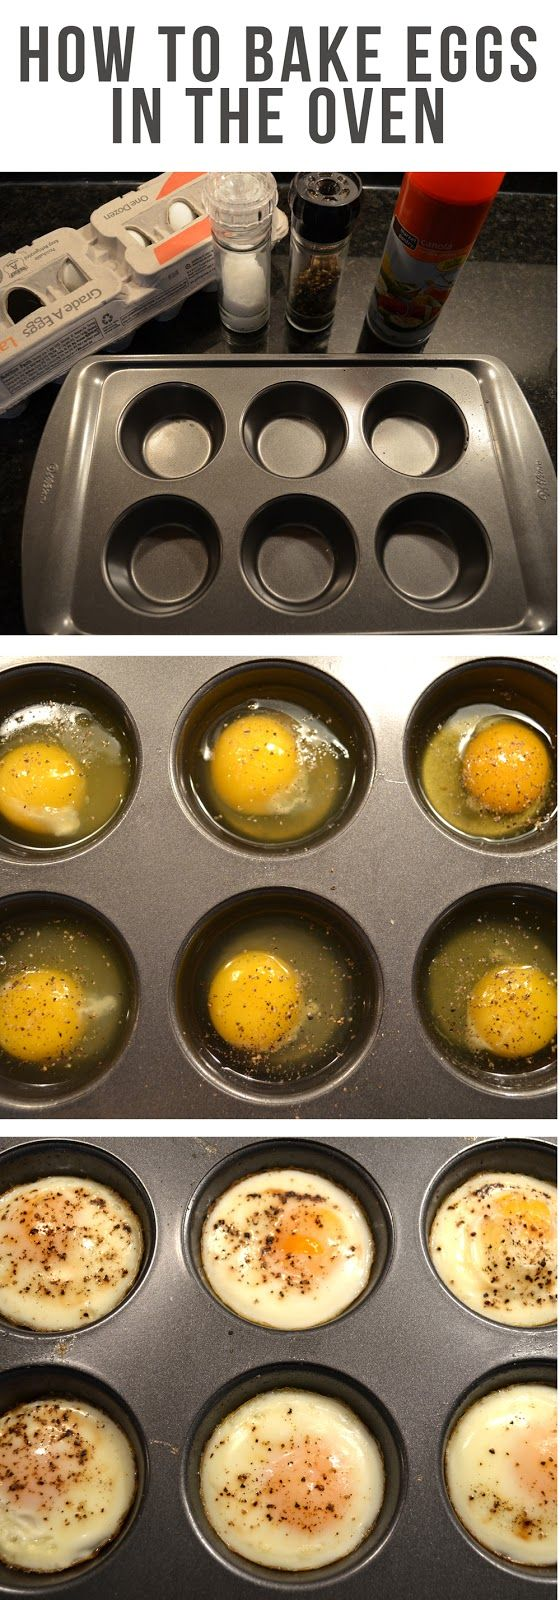 Set your oven to 350F (180°C), grease a muffin tin with non stick cooking spray and crack your eggs into the tin. Add some flavor with a little shake of salt and pepper. Bake for about 15-20 minutes.